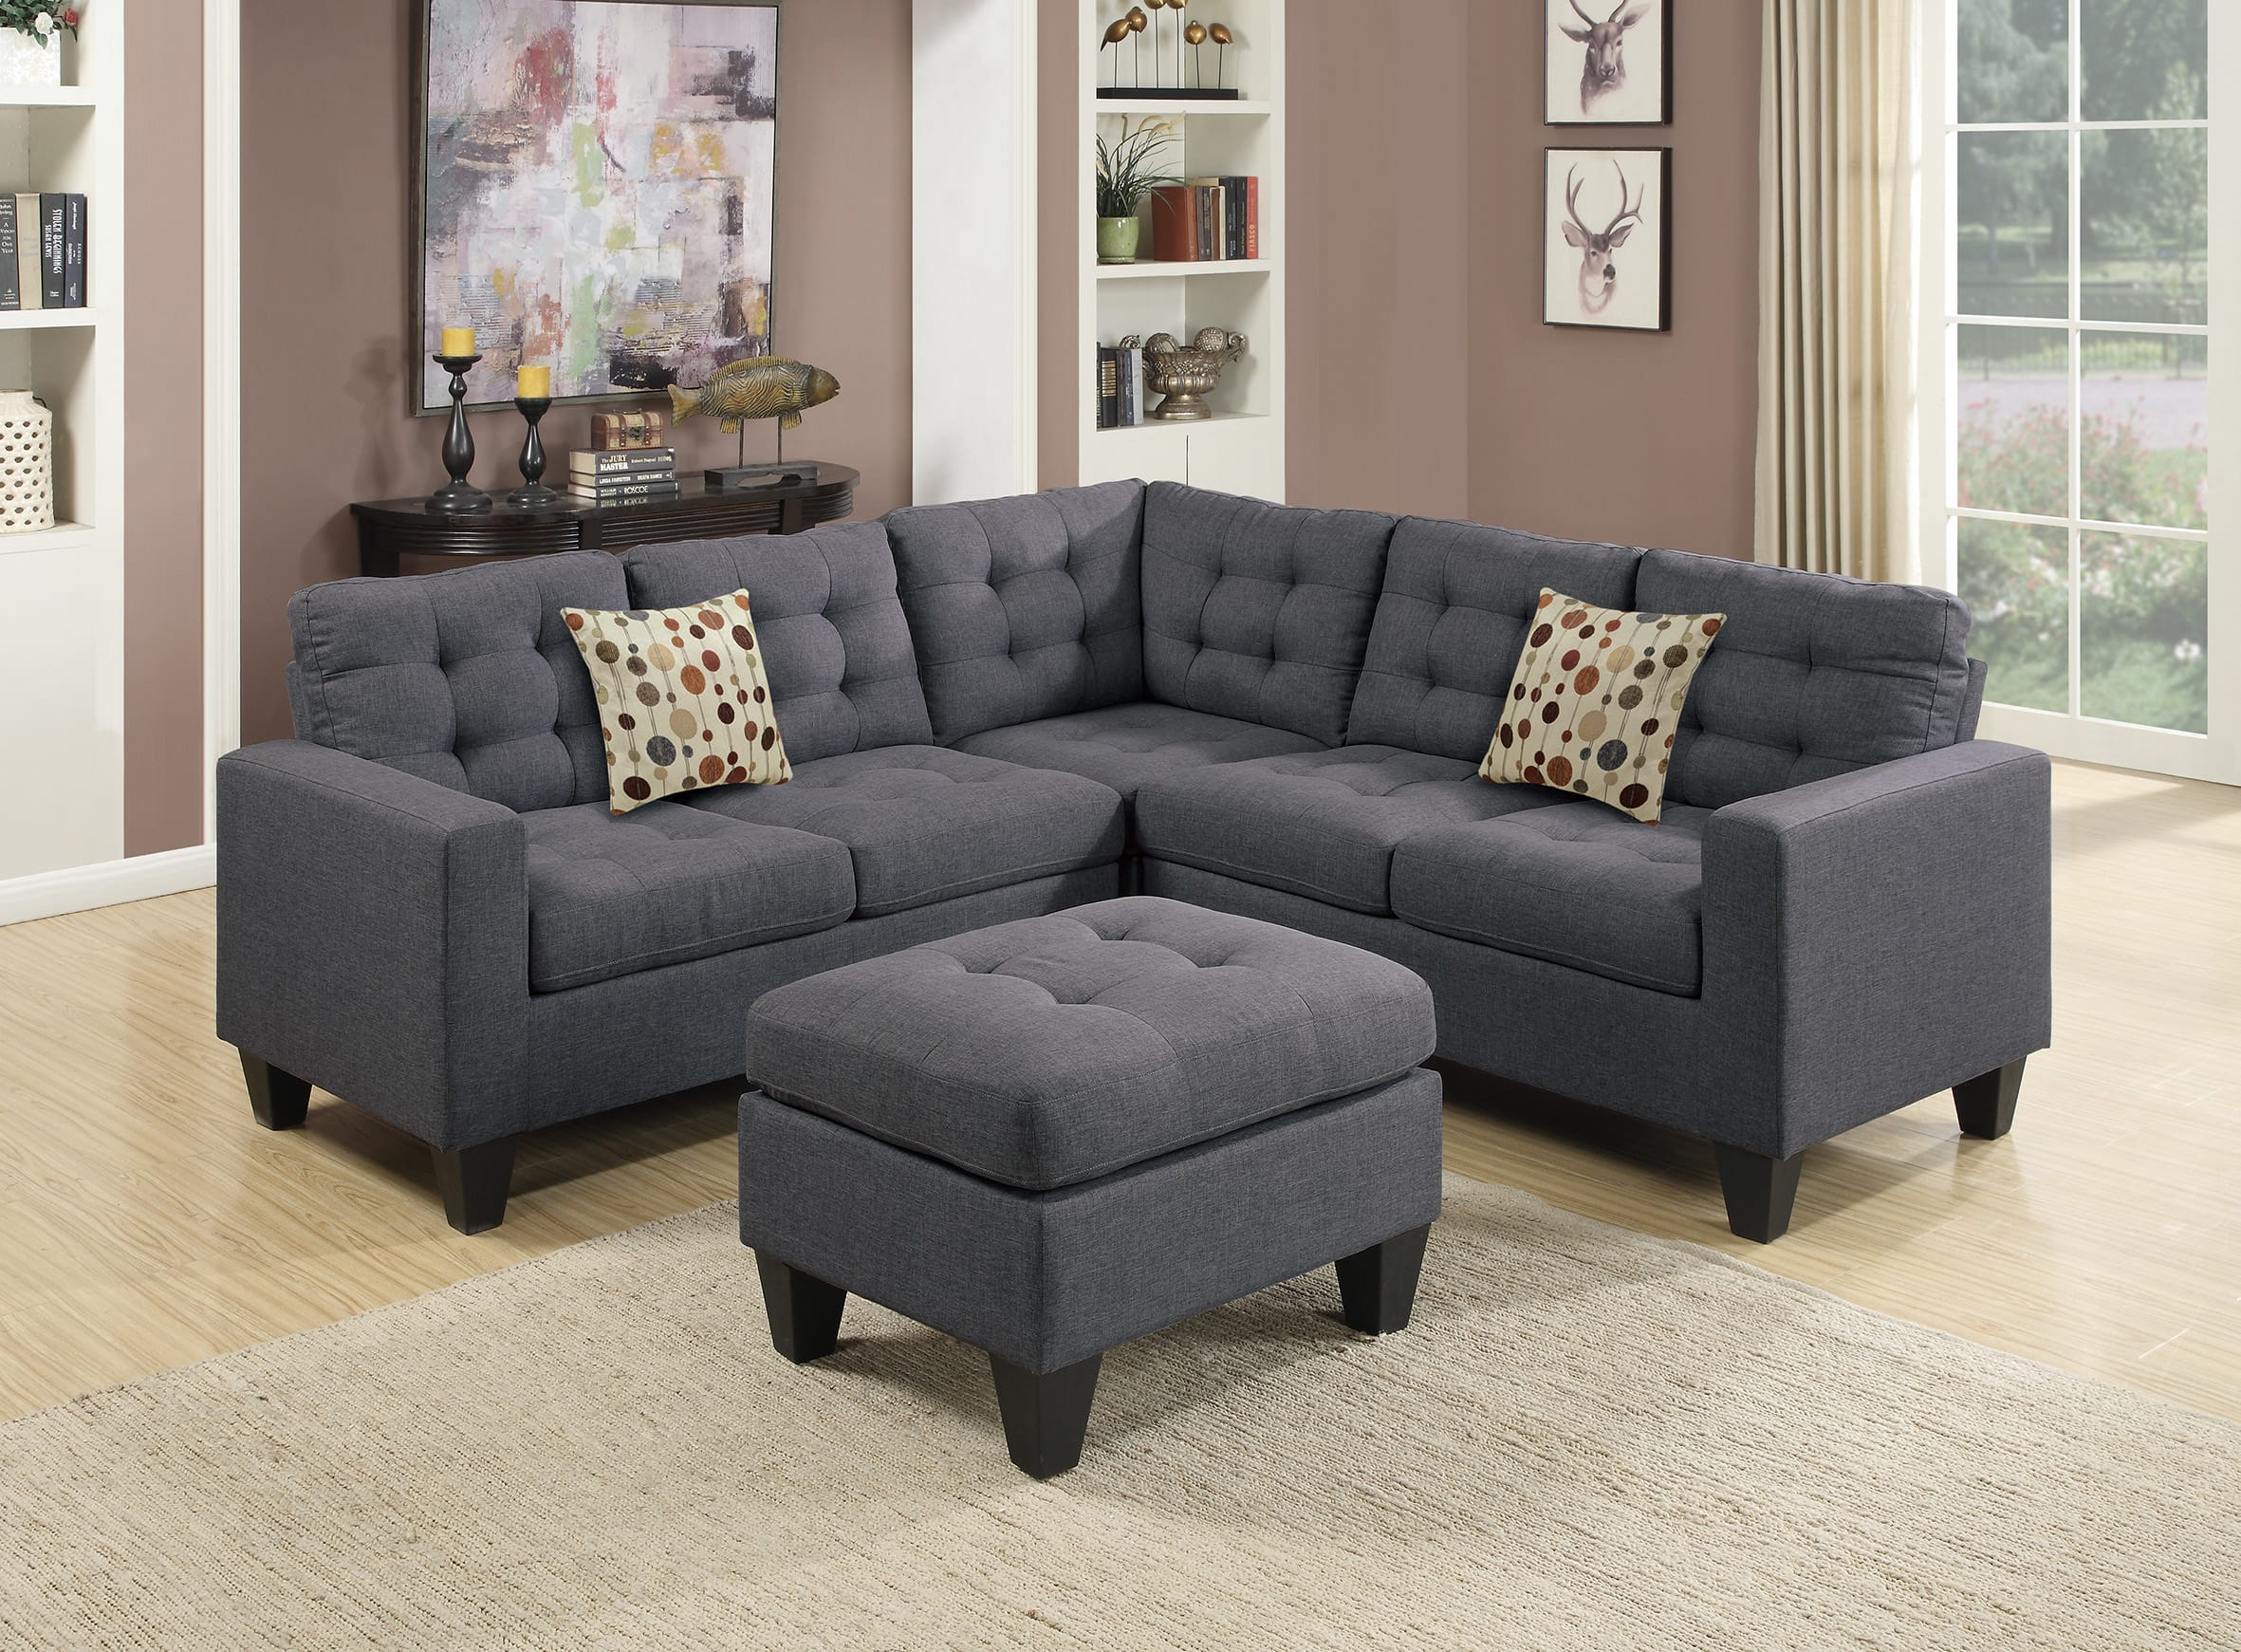 F6935 Blue Gray Sectional Sofa Set By Poundex ~ Blue Gray Sectional Sofa